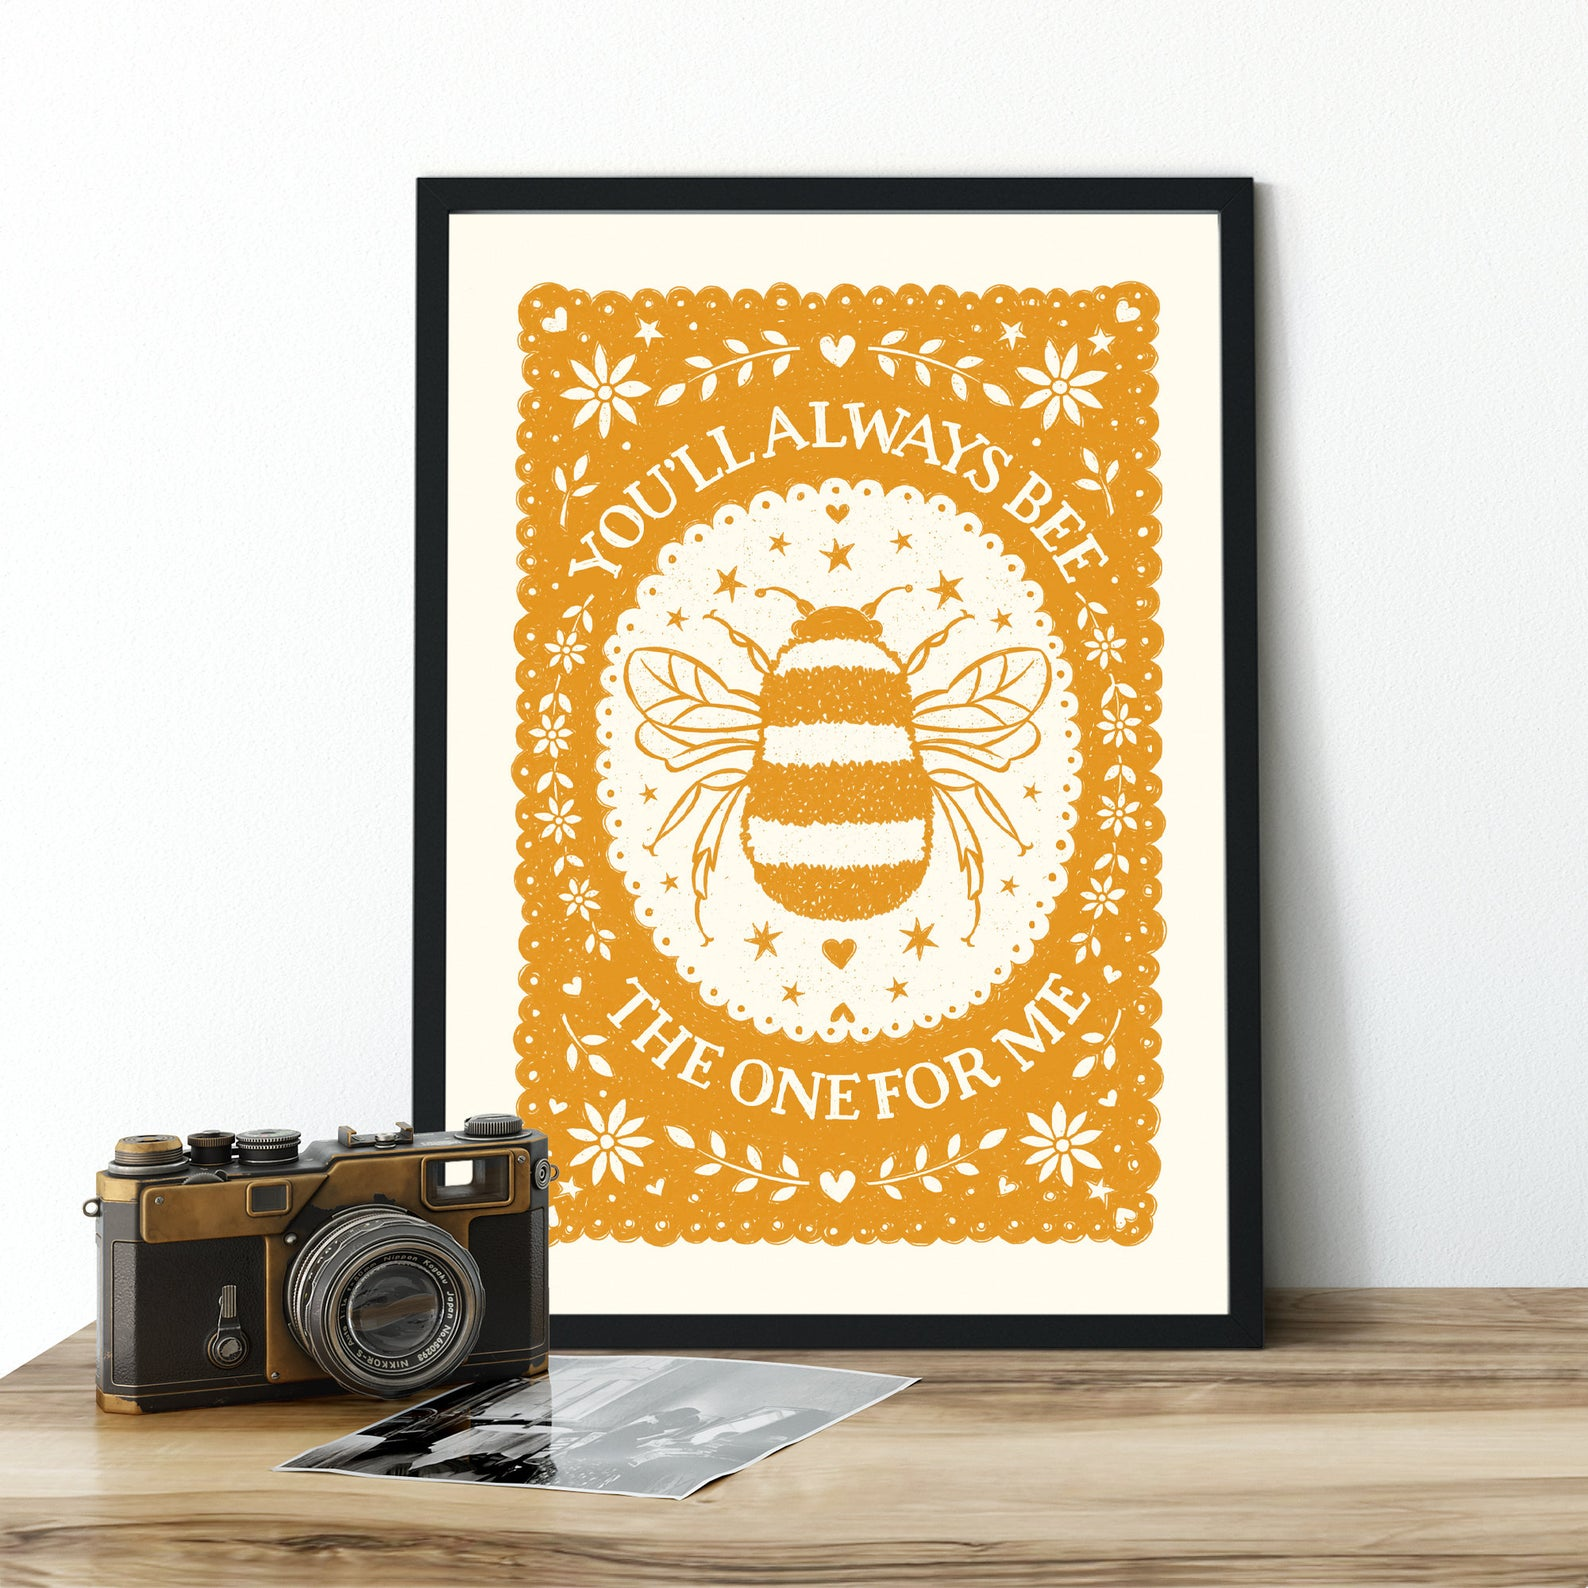 Alexandra Snowdon A3 Bee The One For Me Print